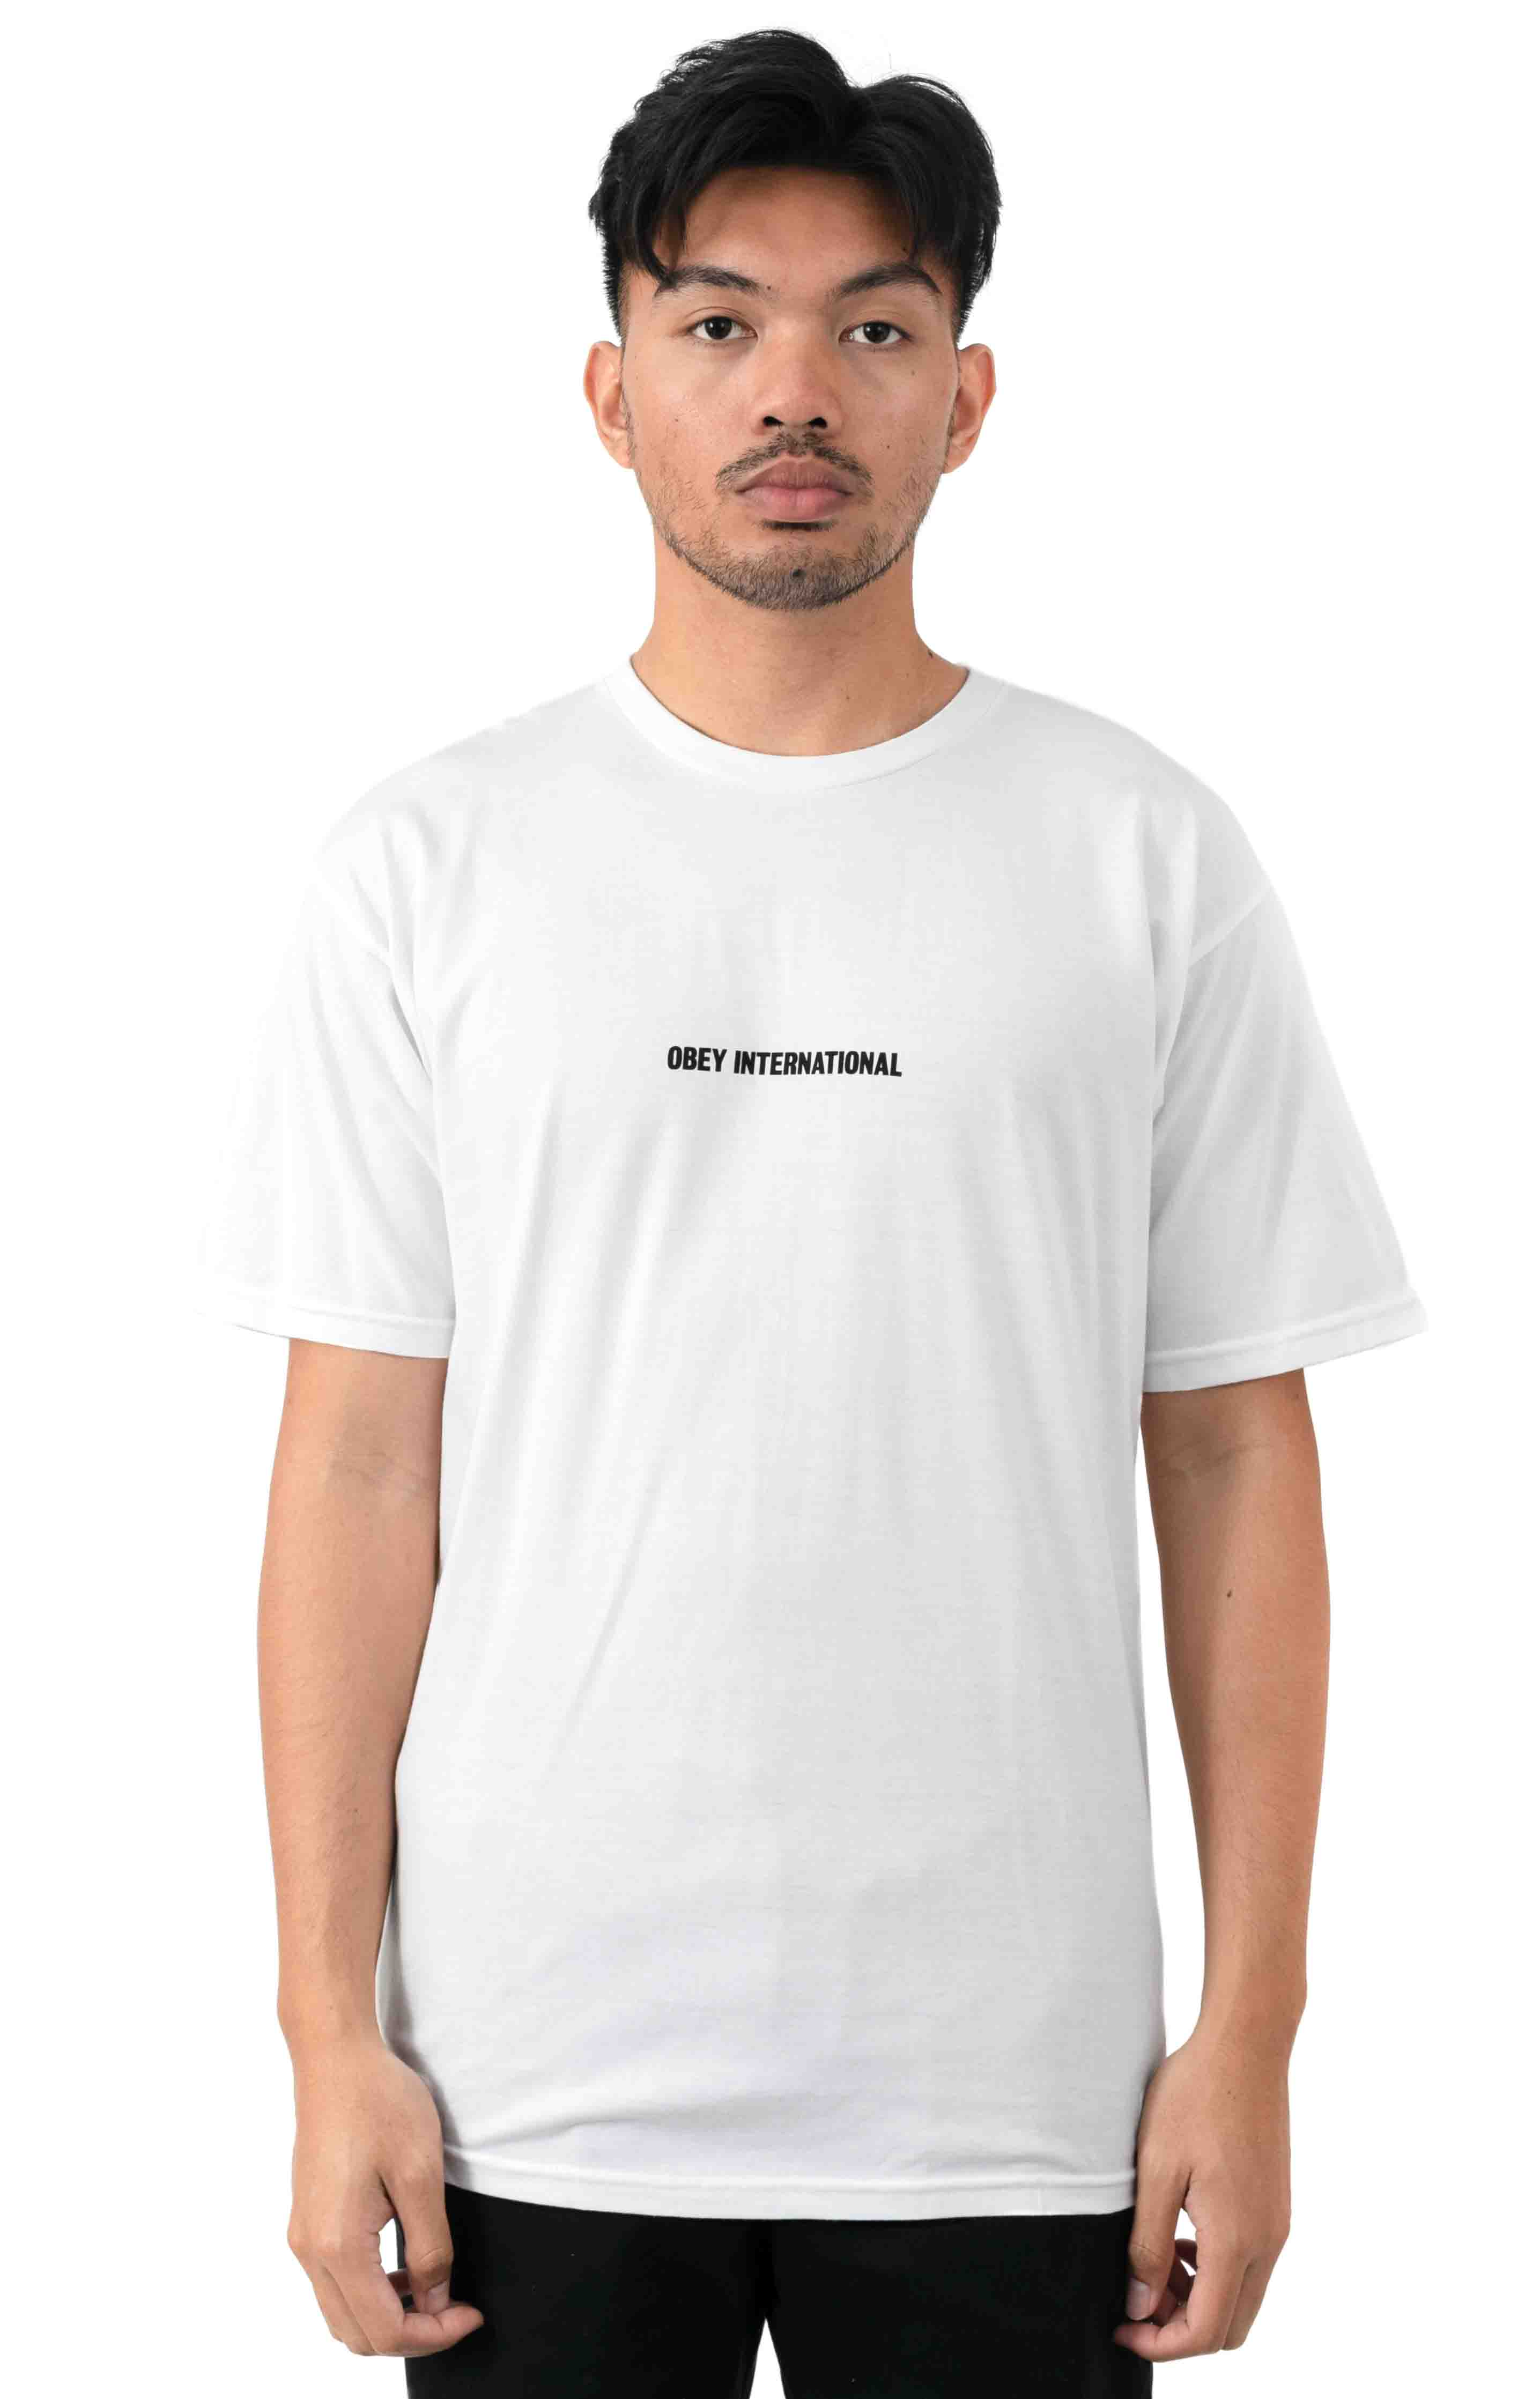 OBEY International Cities T-Shirt - White 2